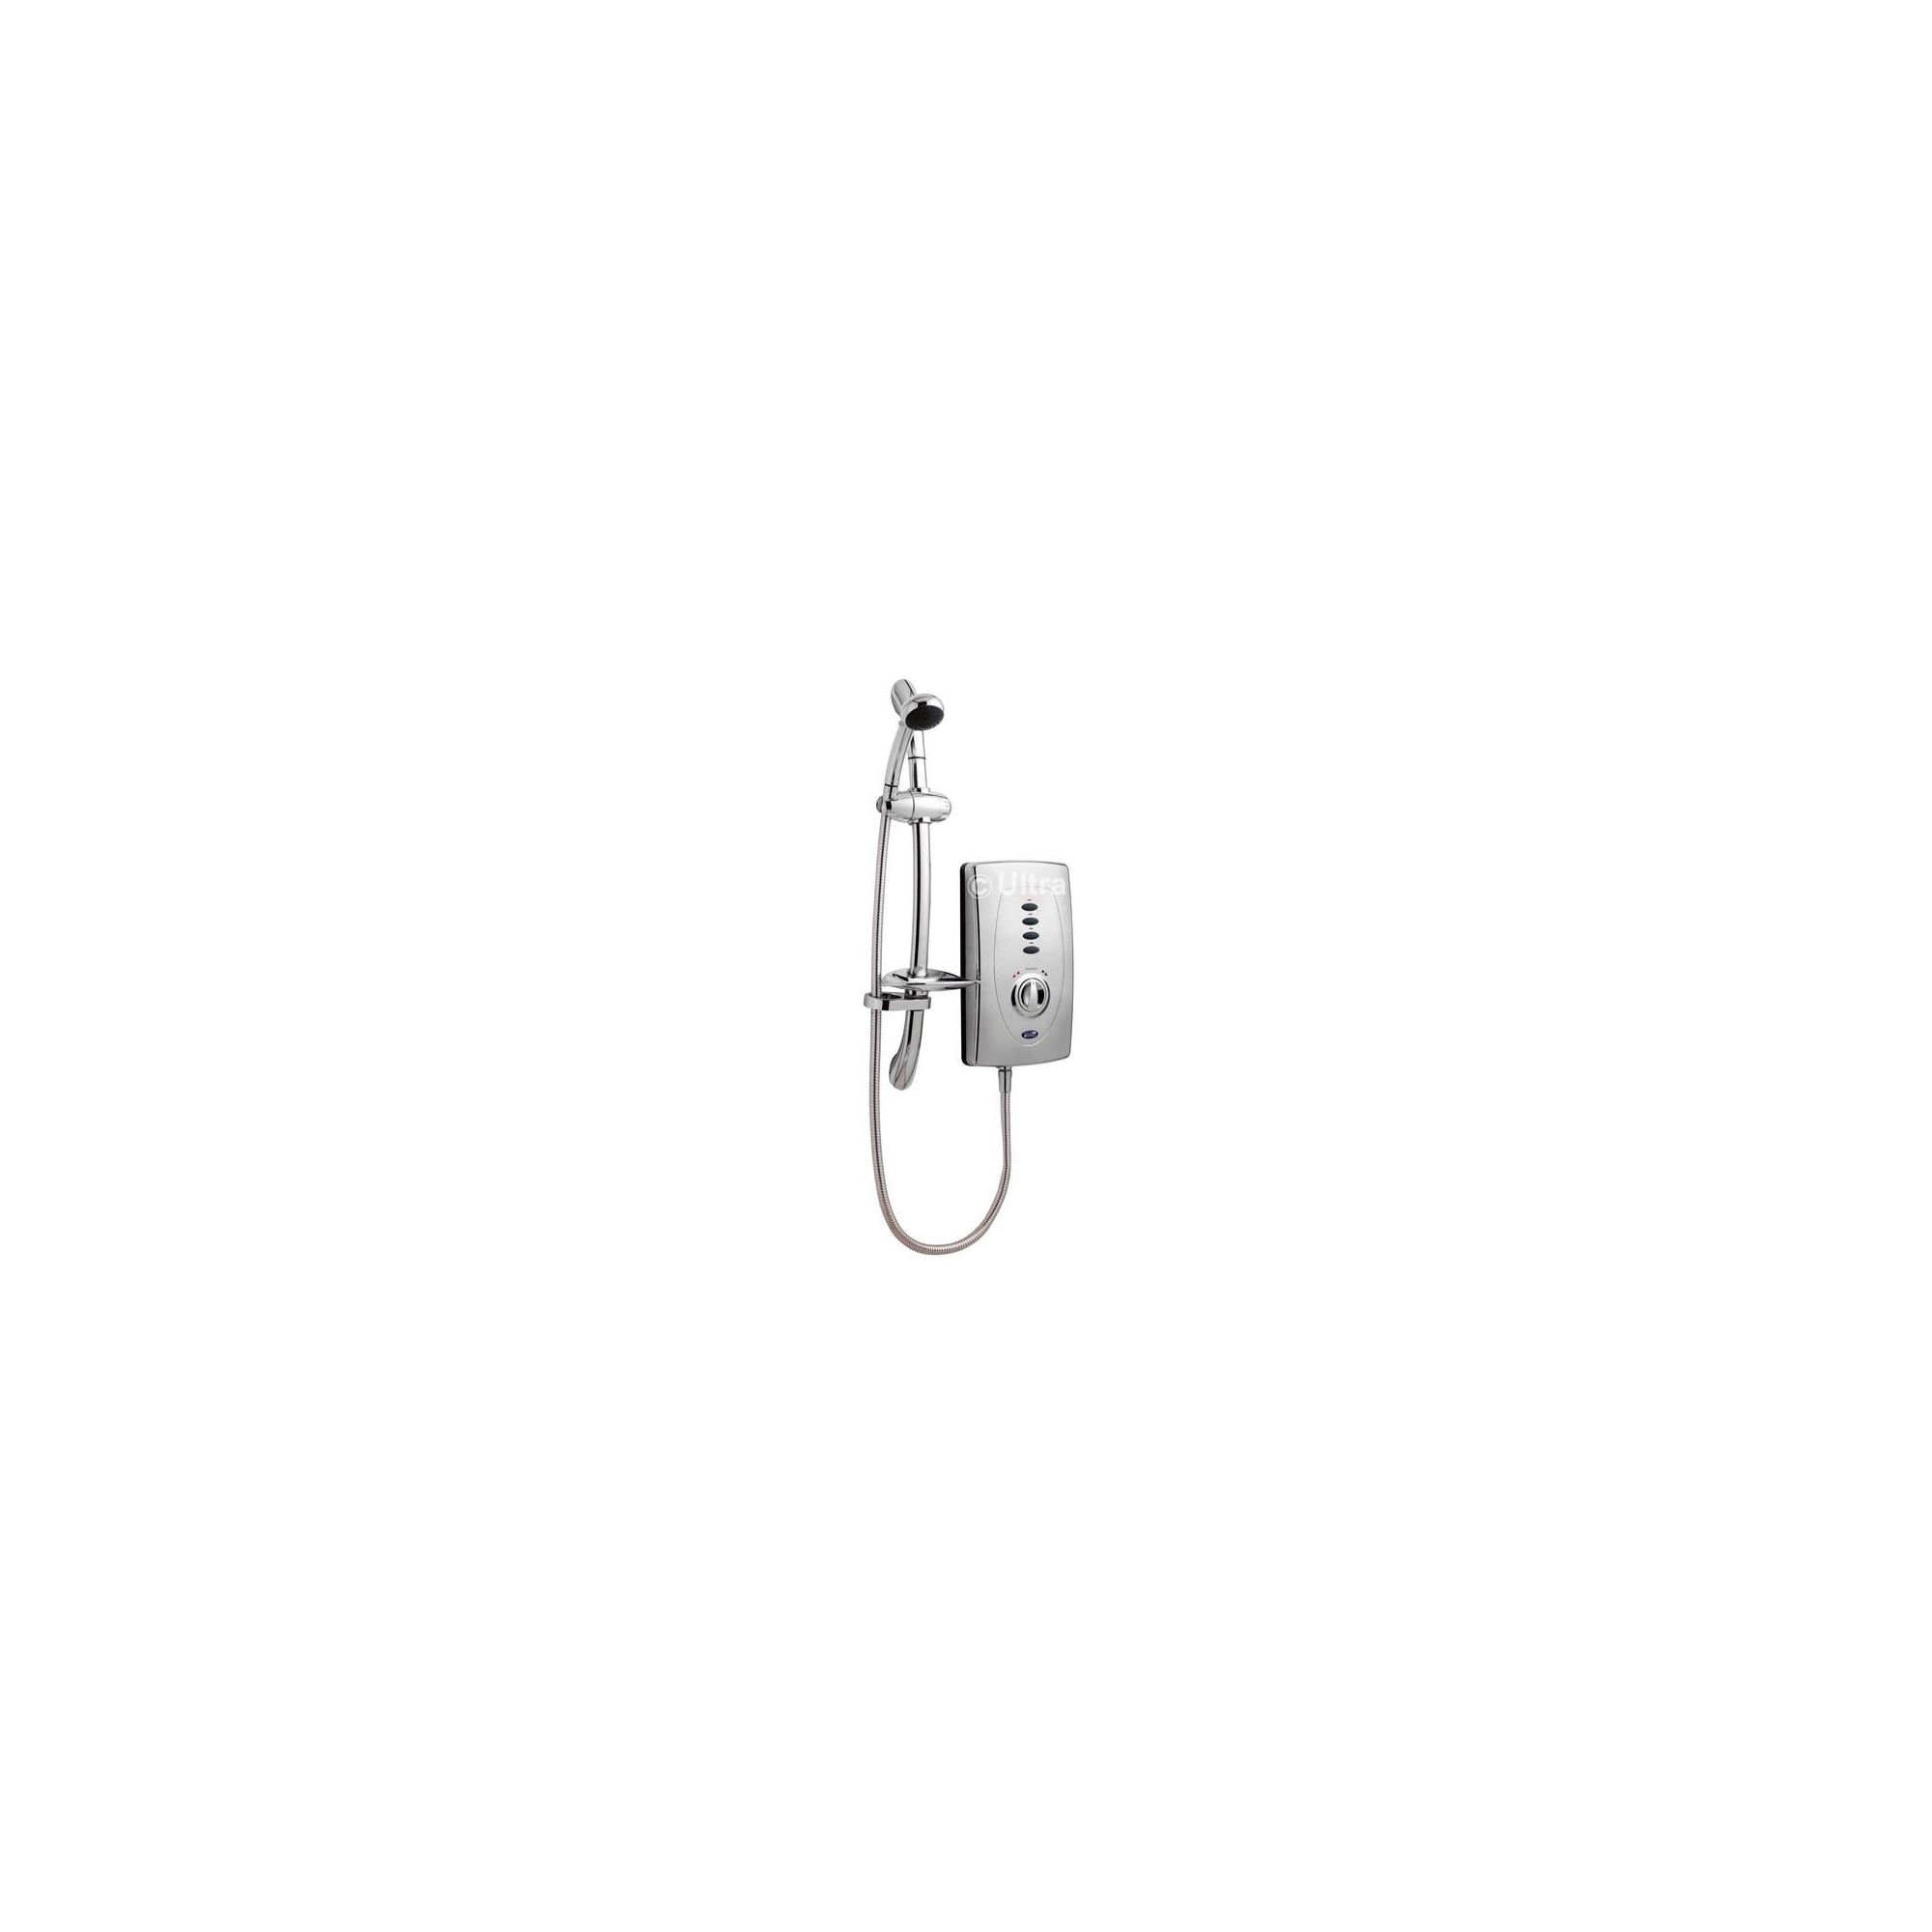 Ultra Chic 650 Slimline Electric Shower Chrome 9.5kW at Tesco Direct